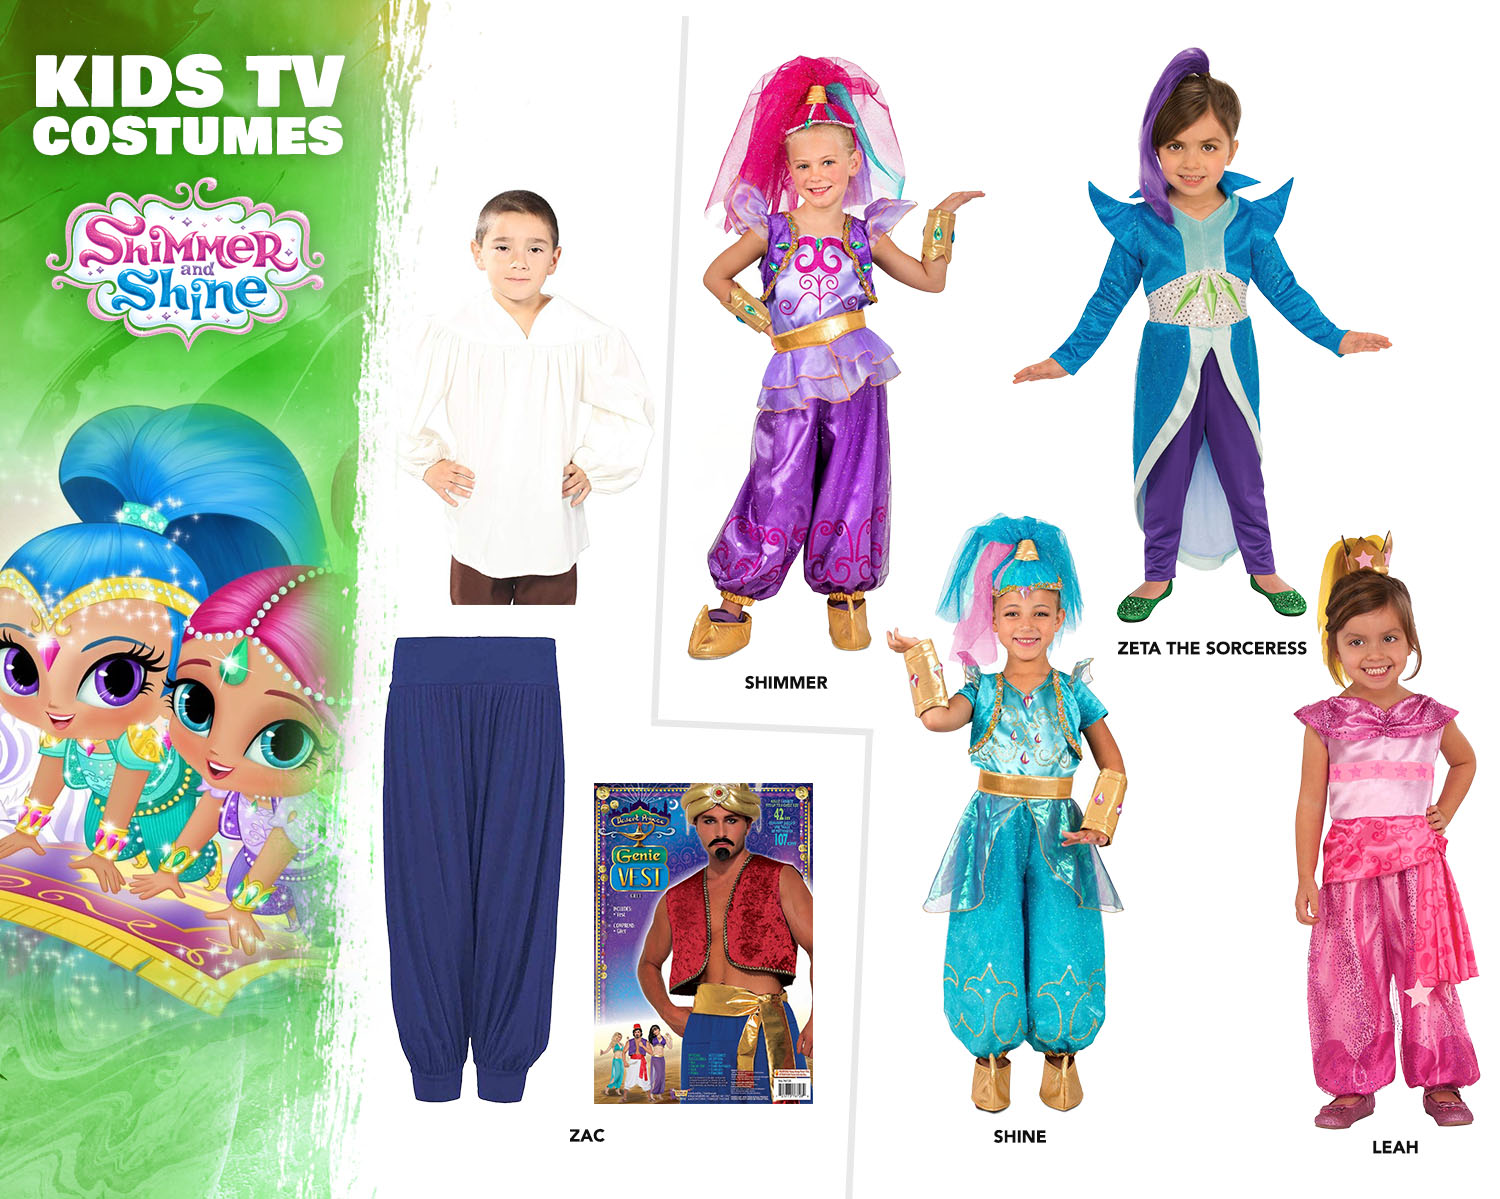 Shimmer & Shine Costume Ideas